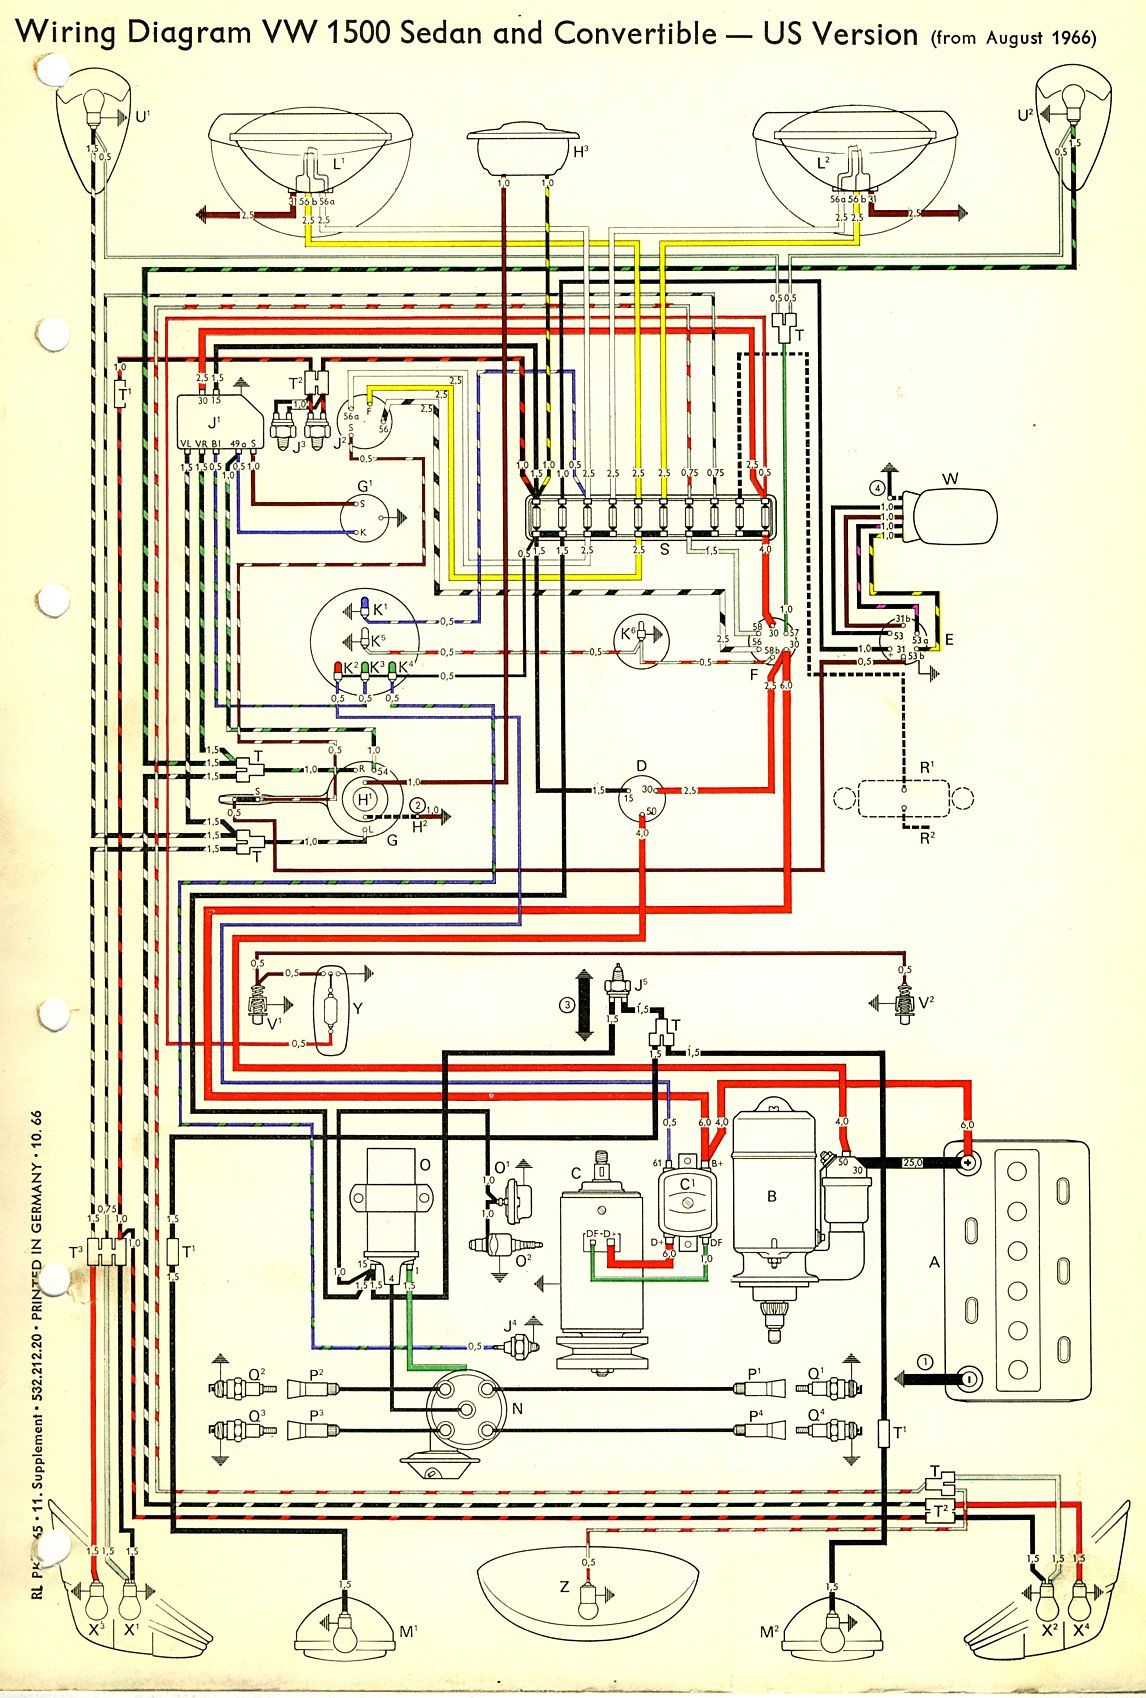 vw buggy wiring diagram for a 1600 wiring library rh 16 seo memo de